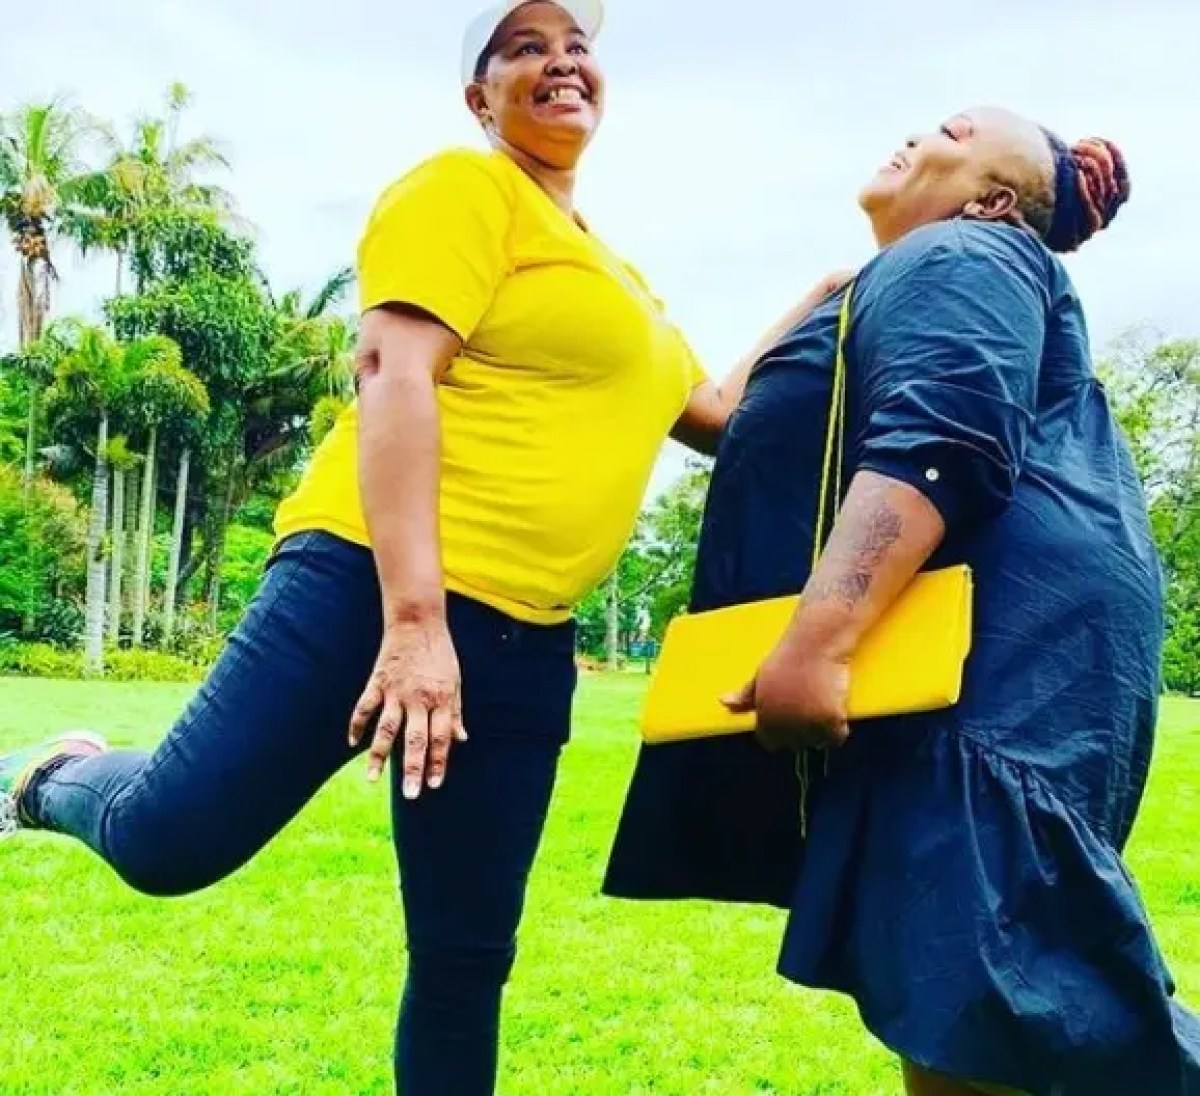 In Pictures: Get to know Mpume Mthombeni's 'Ma Dlamini' from Durban Gen girlfriend in real life